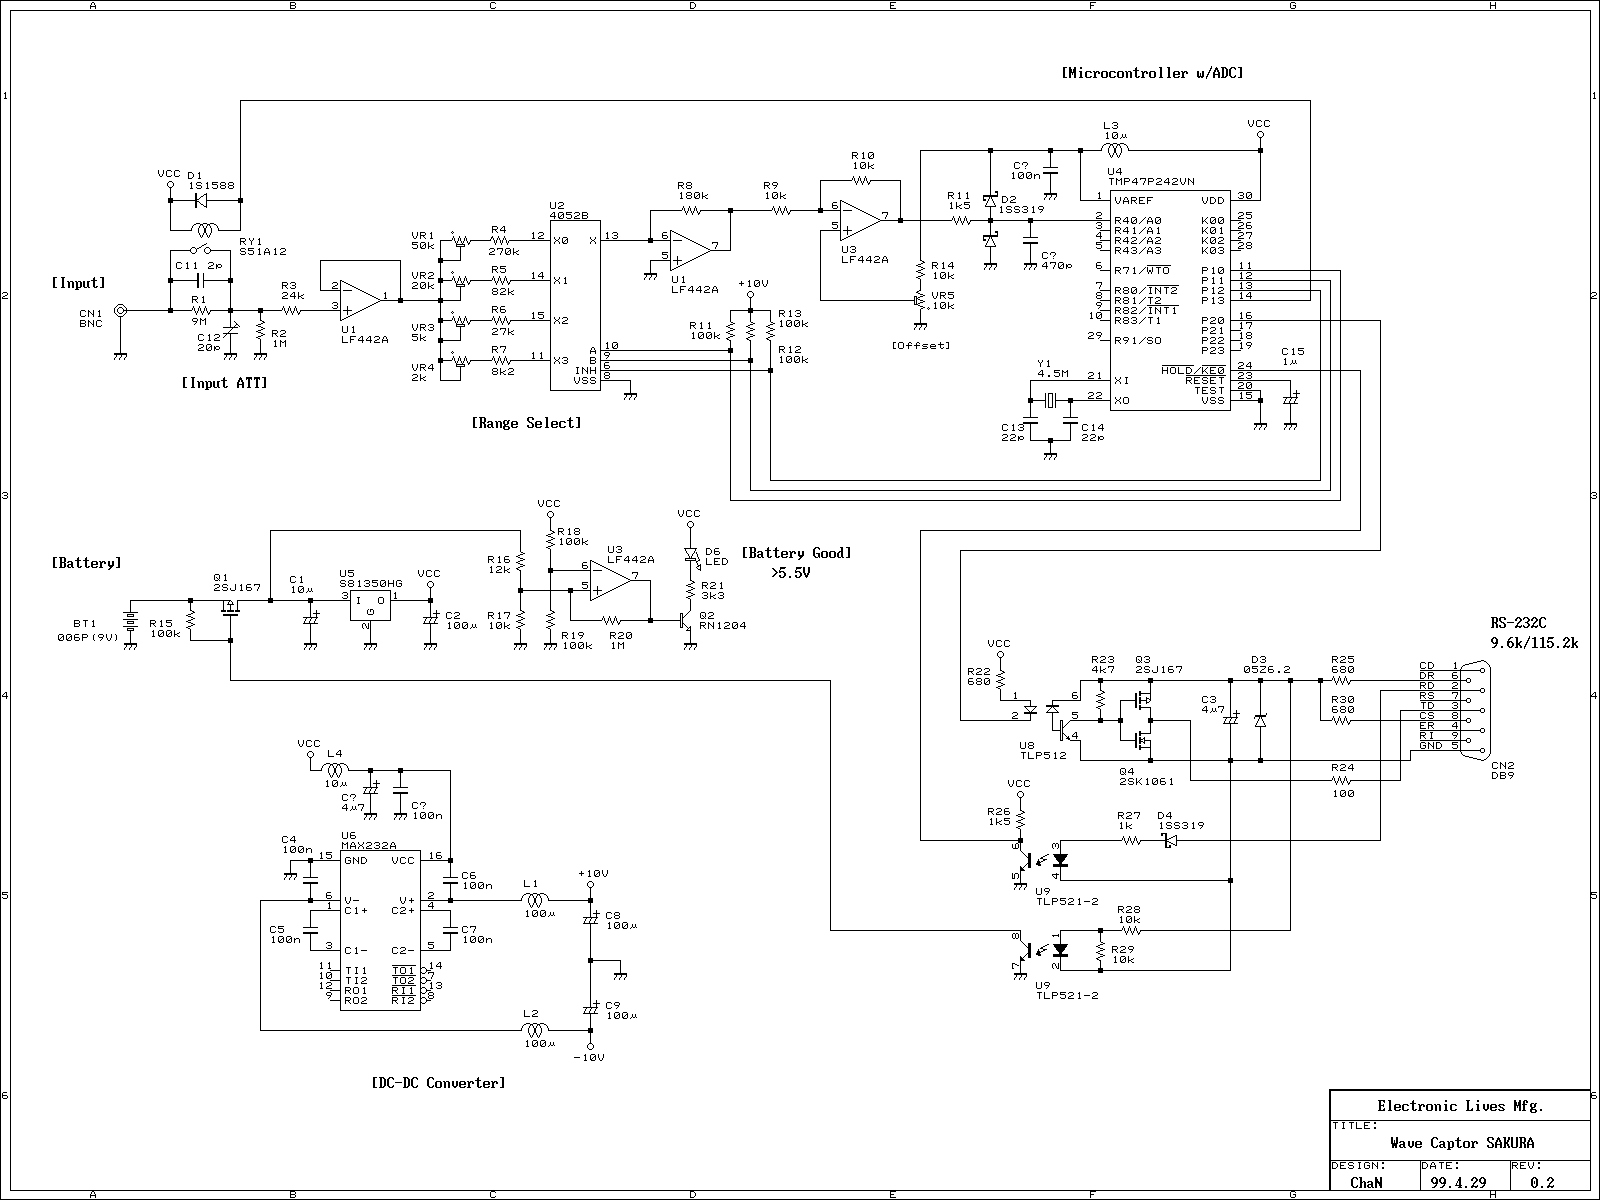 Marvelous Oscilloscopecounterpreamplifiercircuit Diagram World Electrical Wiring Cloud Ratagdienstapotheekhoekschewaardnl